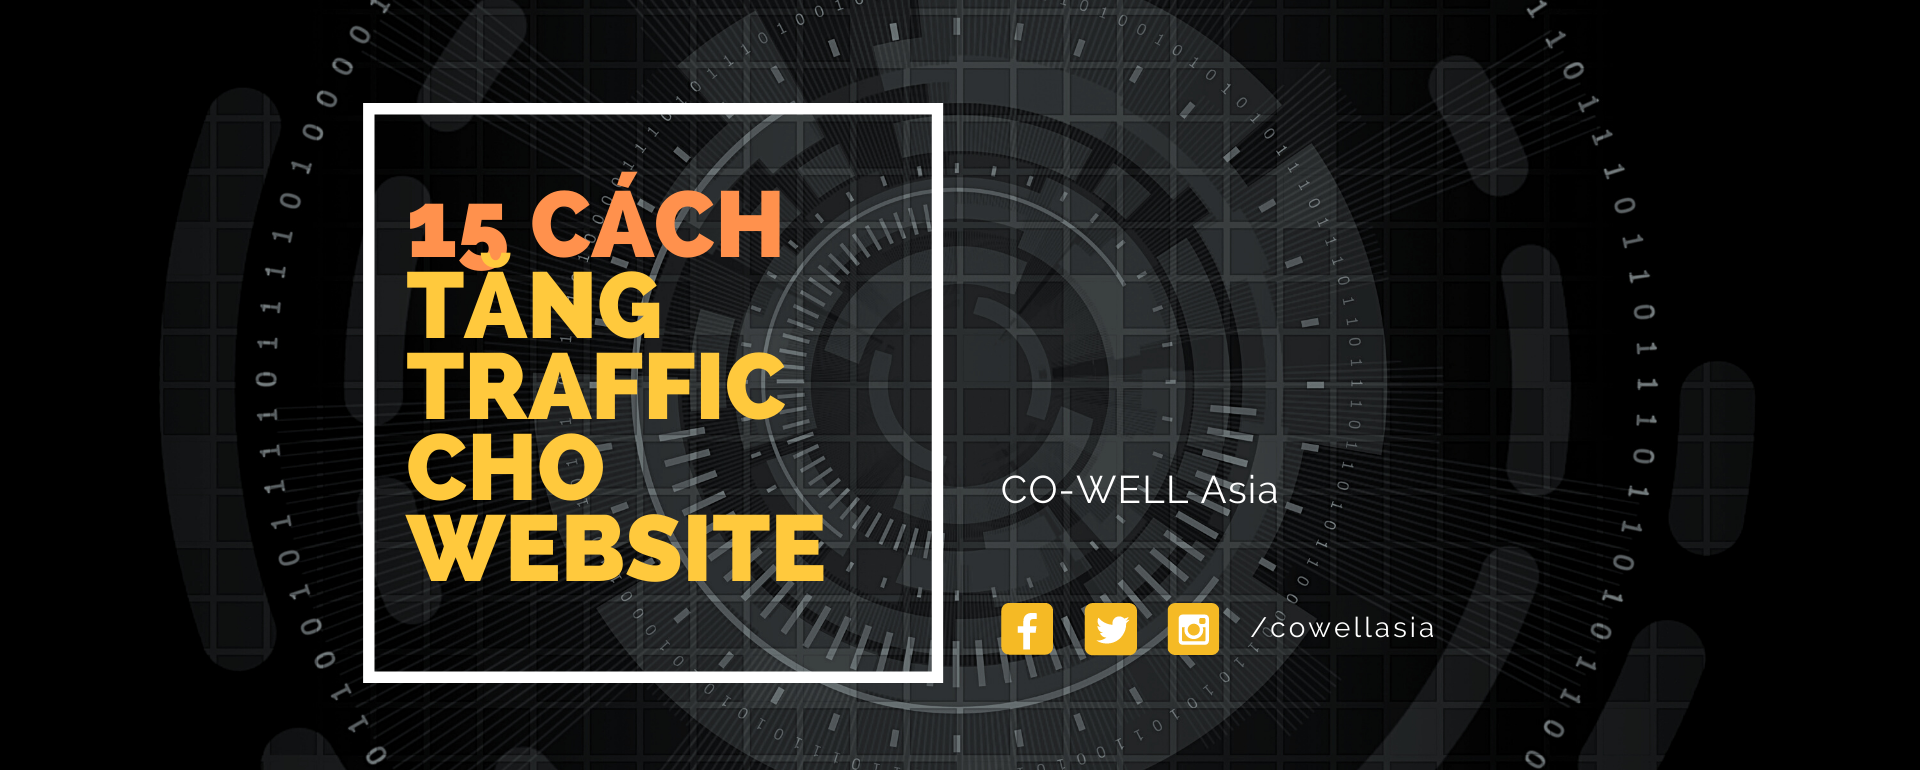 15 cach tang traffic cho website